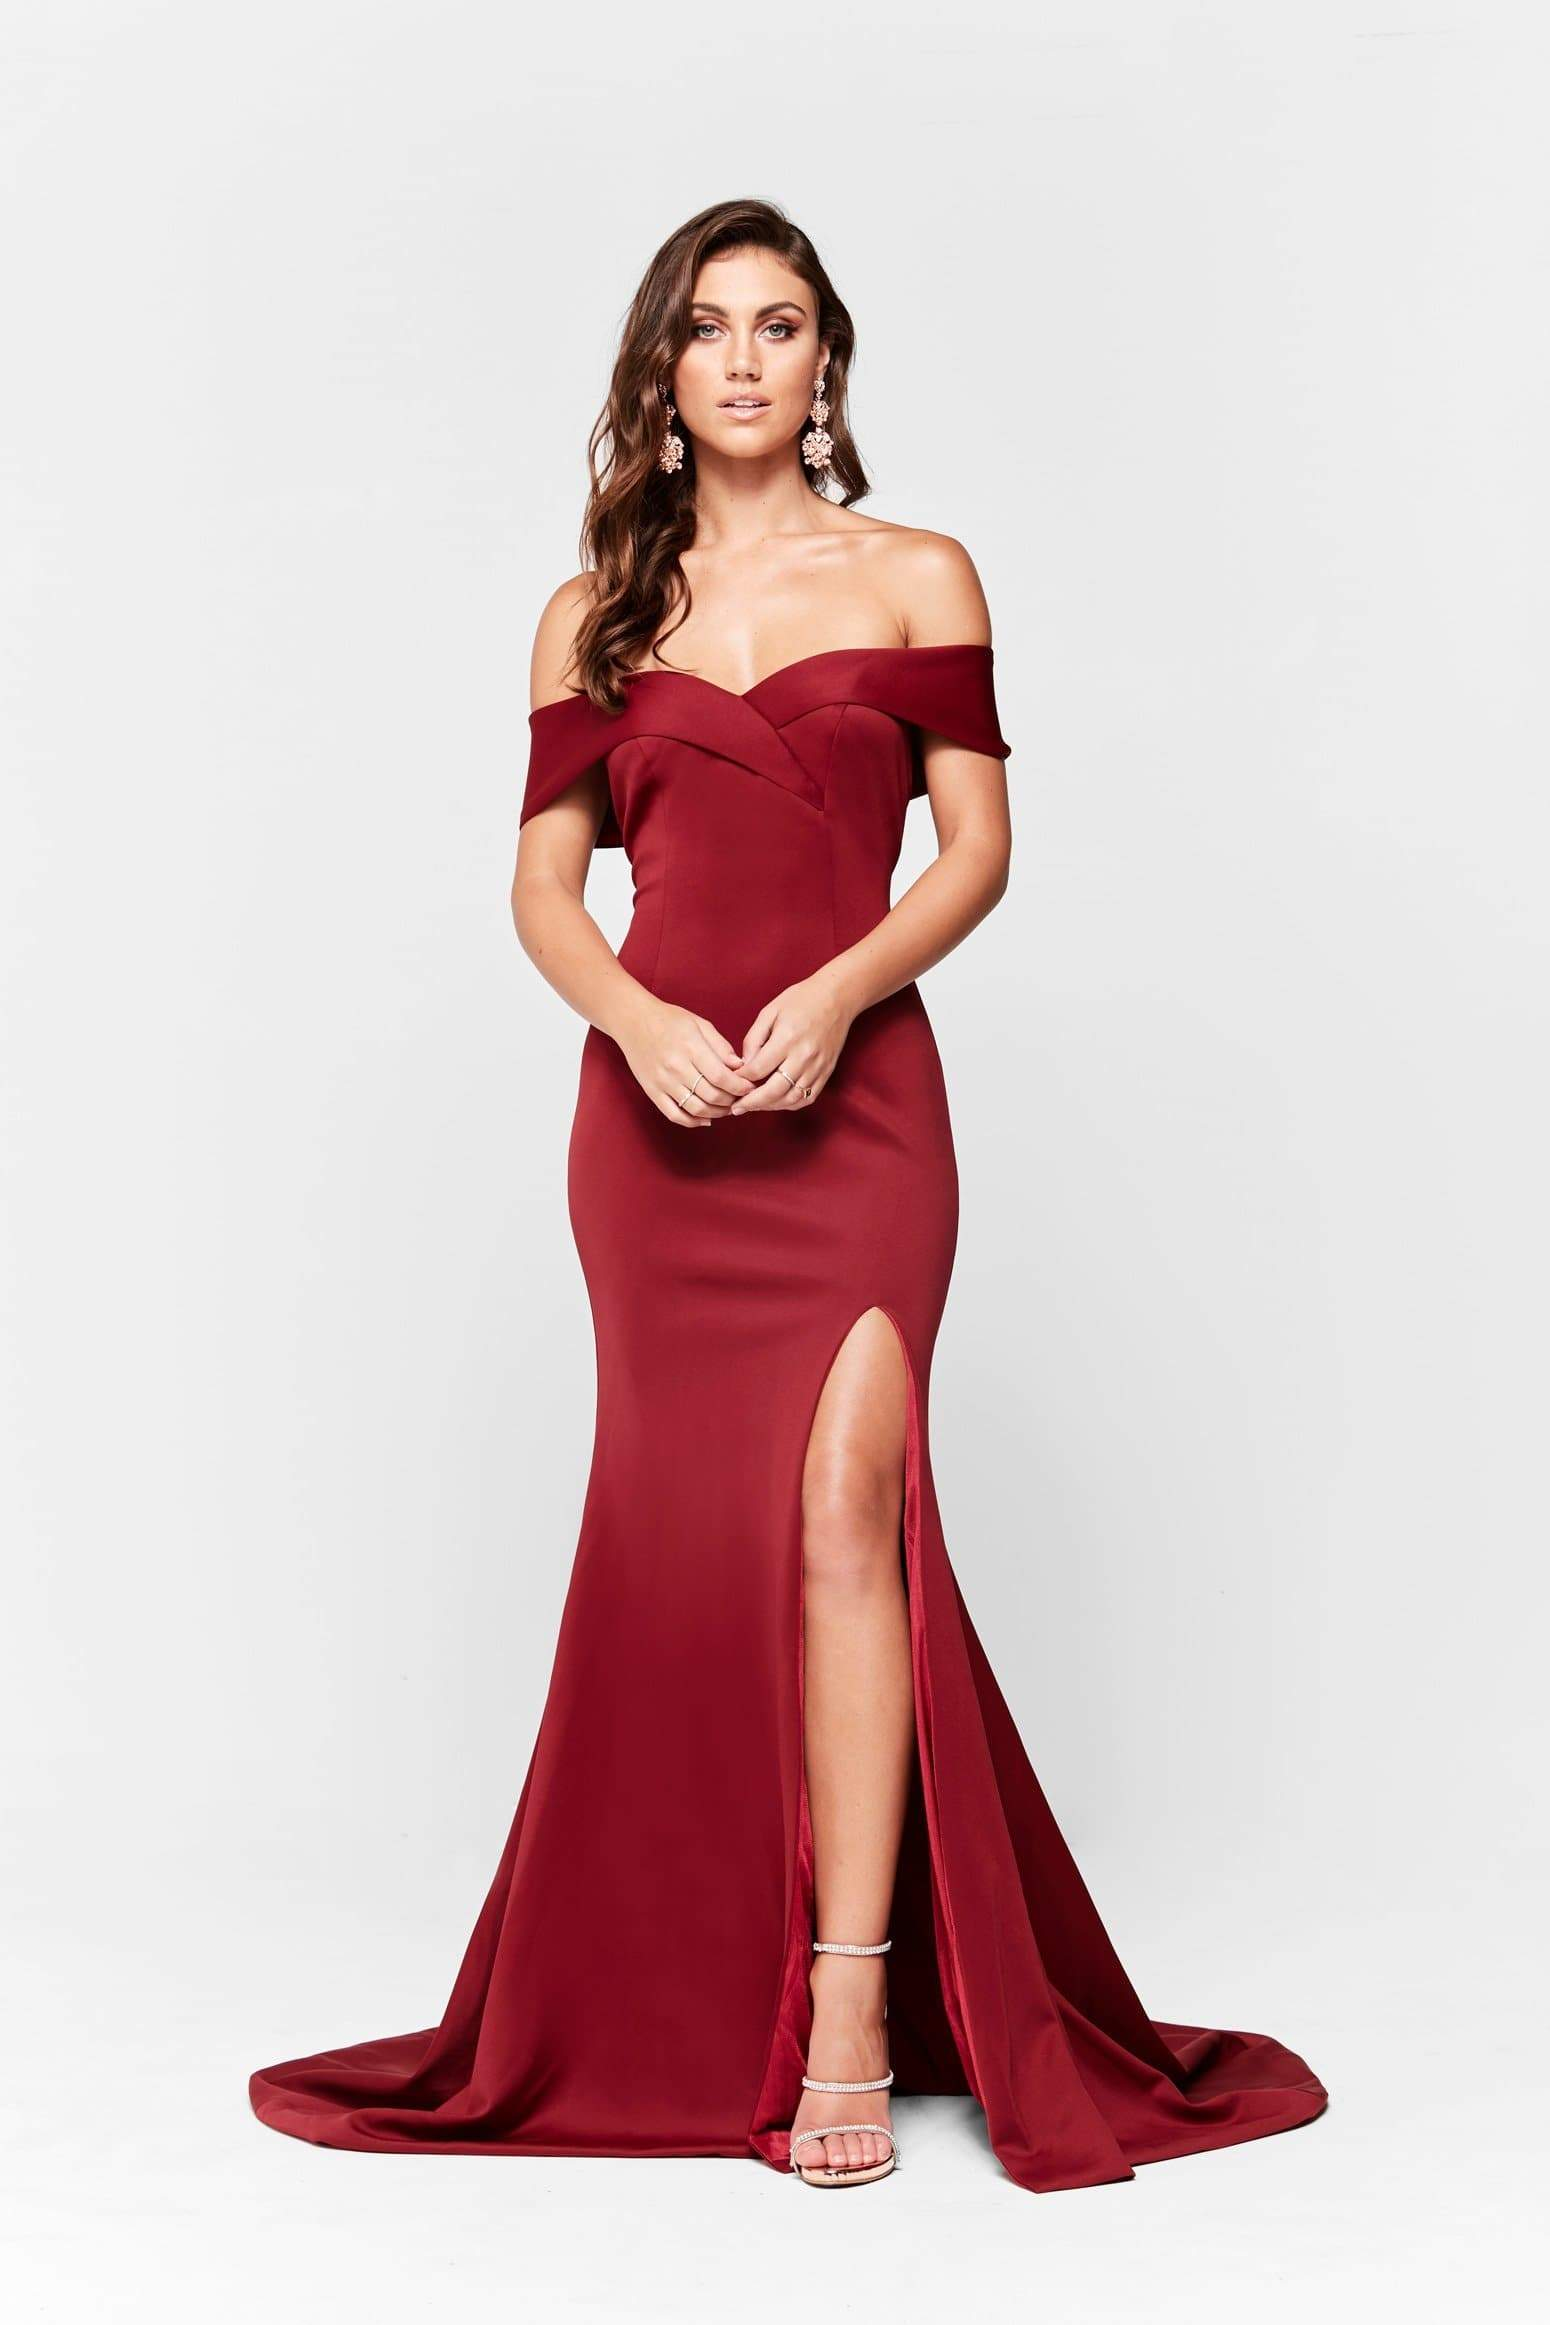 A&N Ester - Burgundy Ponti Off Shoulder Gown with Front Slit